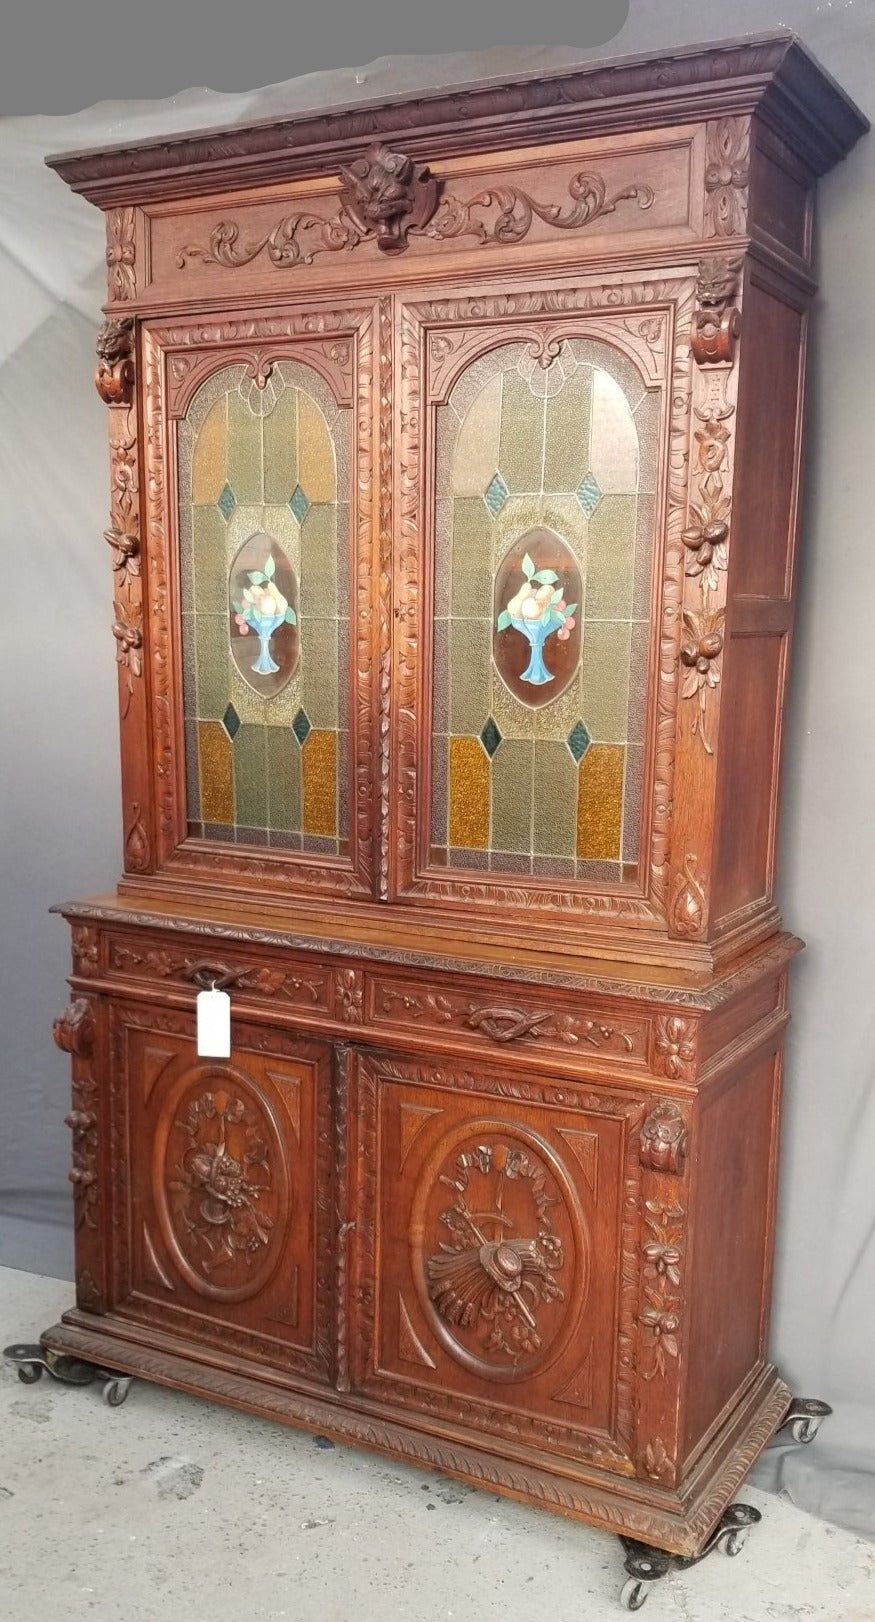 NEO RENAISSANCE LION HEAD OAK BOOKCASE WITH FRUIT STAINED GLASS DOORS